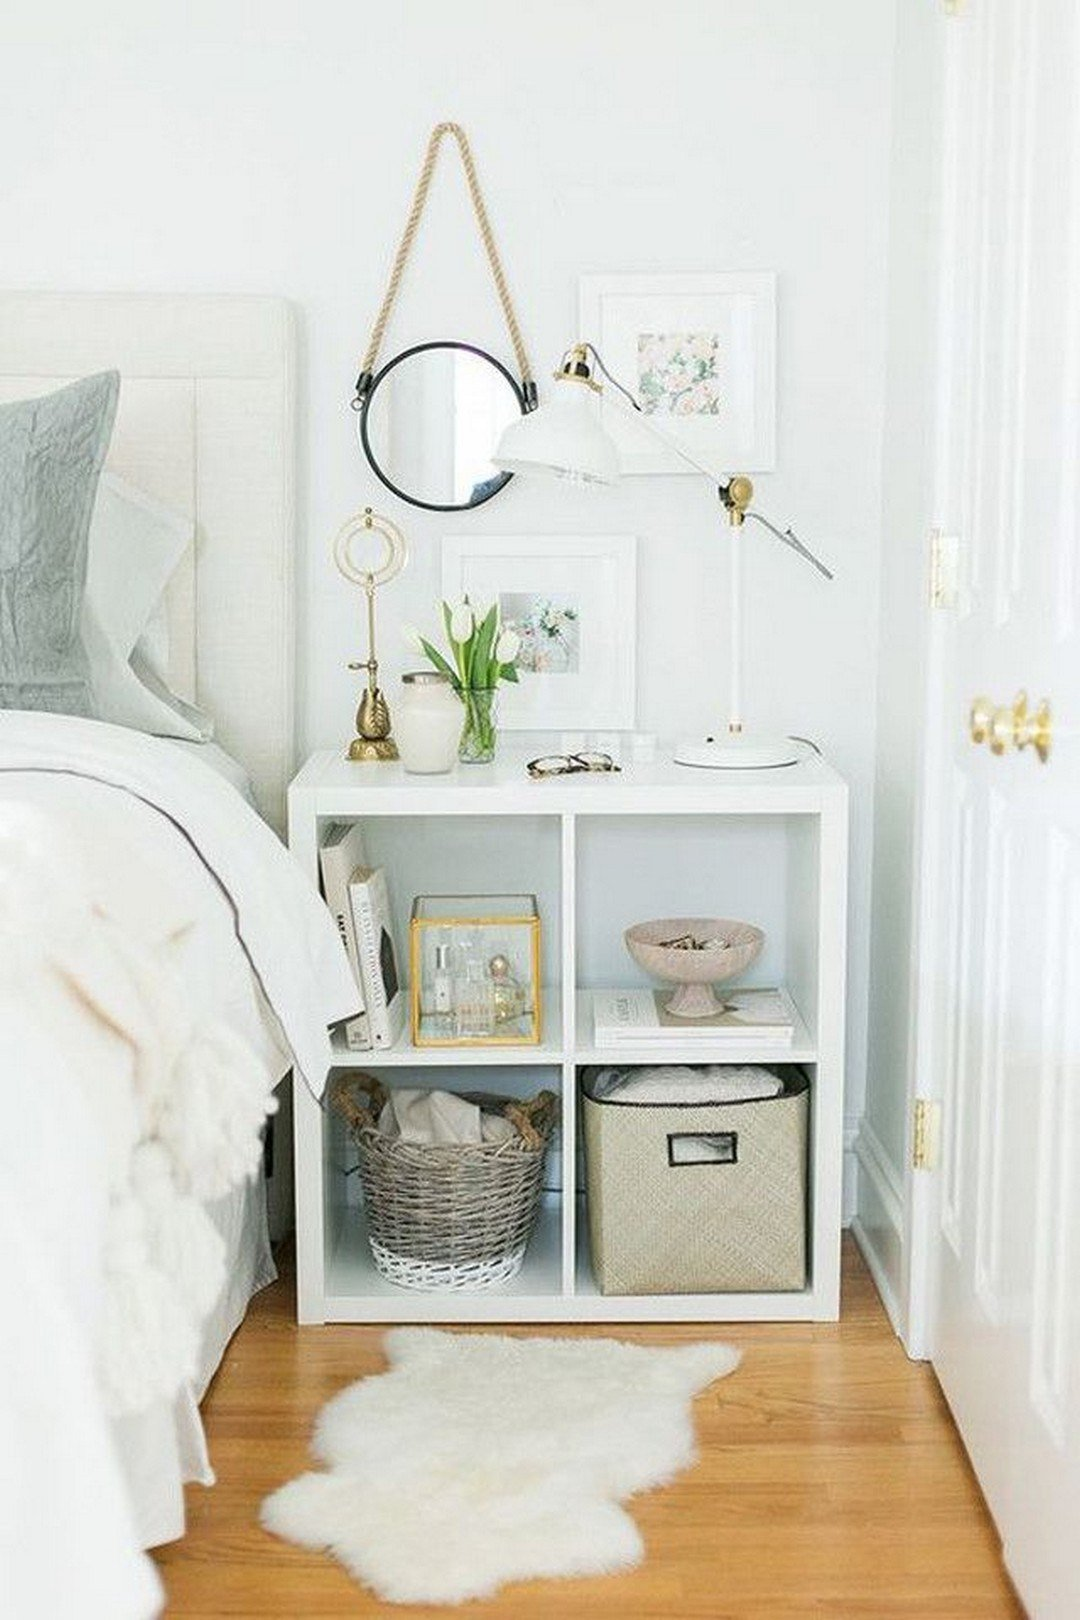 Best Easy Diy Small Bedroom Organization And Storage Hacks 12 Onechitecture With Pictures